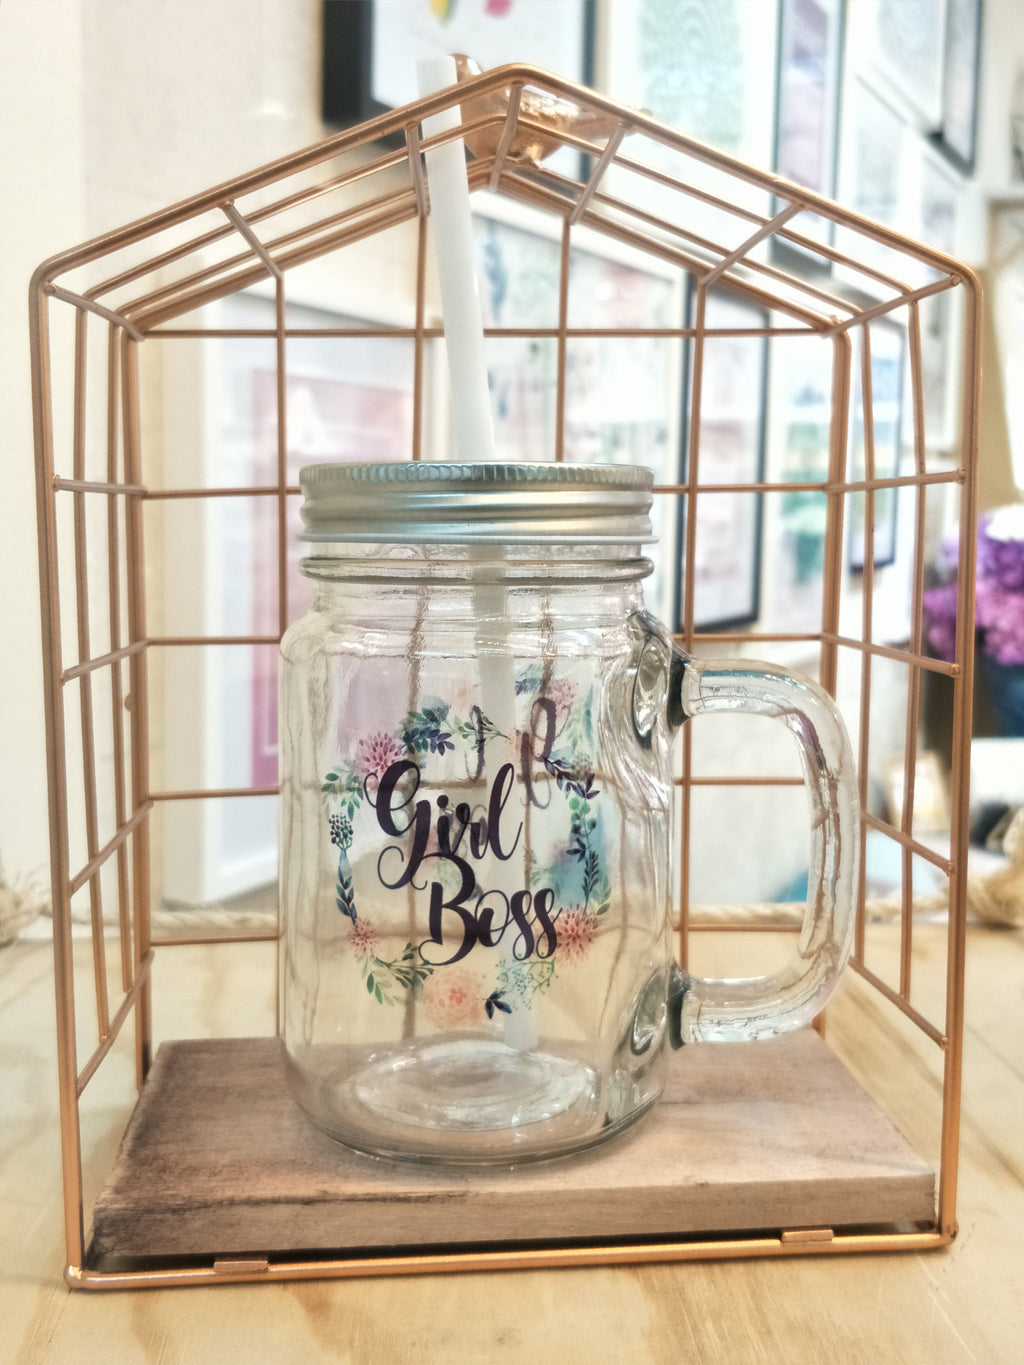 Girl Boss Mason Jar